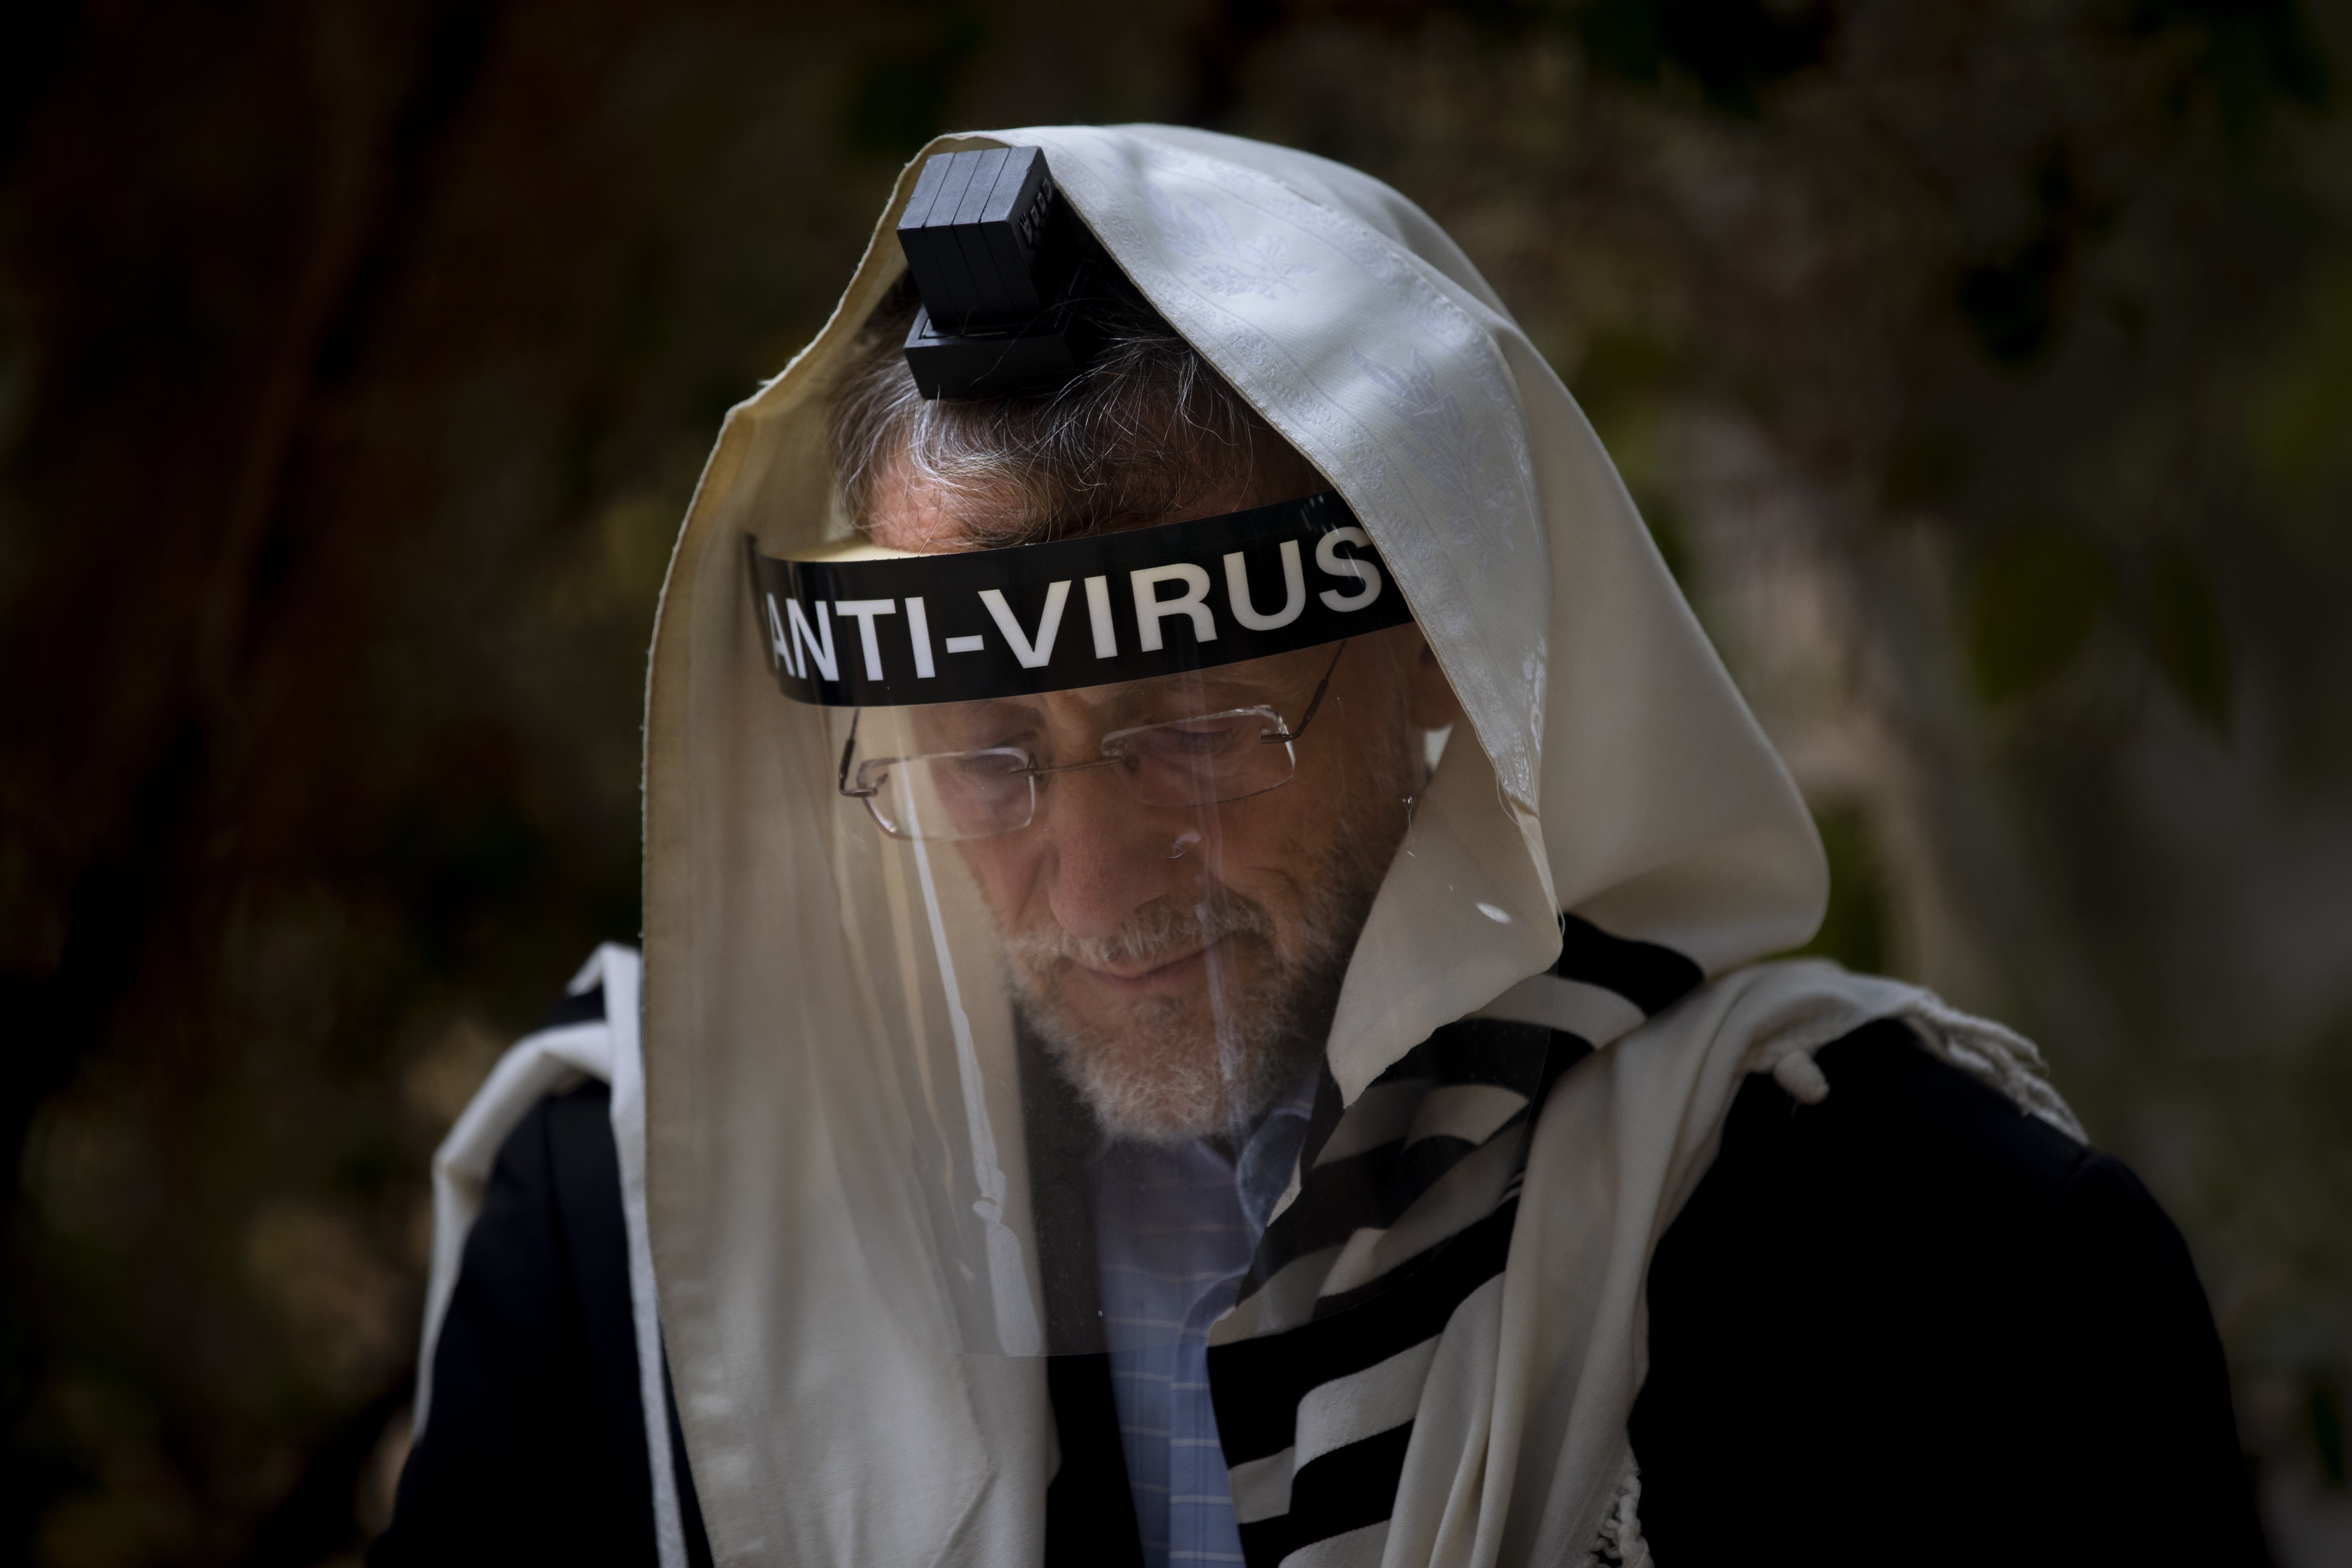 An Ultra-Orthodox Jewish man wears a face mask during a morning prayer next to his house as synagogues are limited to twenty people during a nationwide three-week lockdown to curb the spread of the coronavirus, in Bnei Brak, Israel, Thursday, Sept 24, 2020. Israel moved to further tighten its second countrywide lockdown as coronavirus cases continued to soar. The Cabinet voted to close all nonessential businesses, including open-air markets. Prayers and political demonstrations would be limited to open spaces and no more than 20 people, and participants would not be able to travel more than a kilometer (0.6 miles) from home for either. (AP Photo/Oded Balilty)